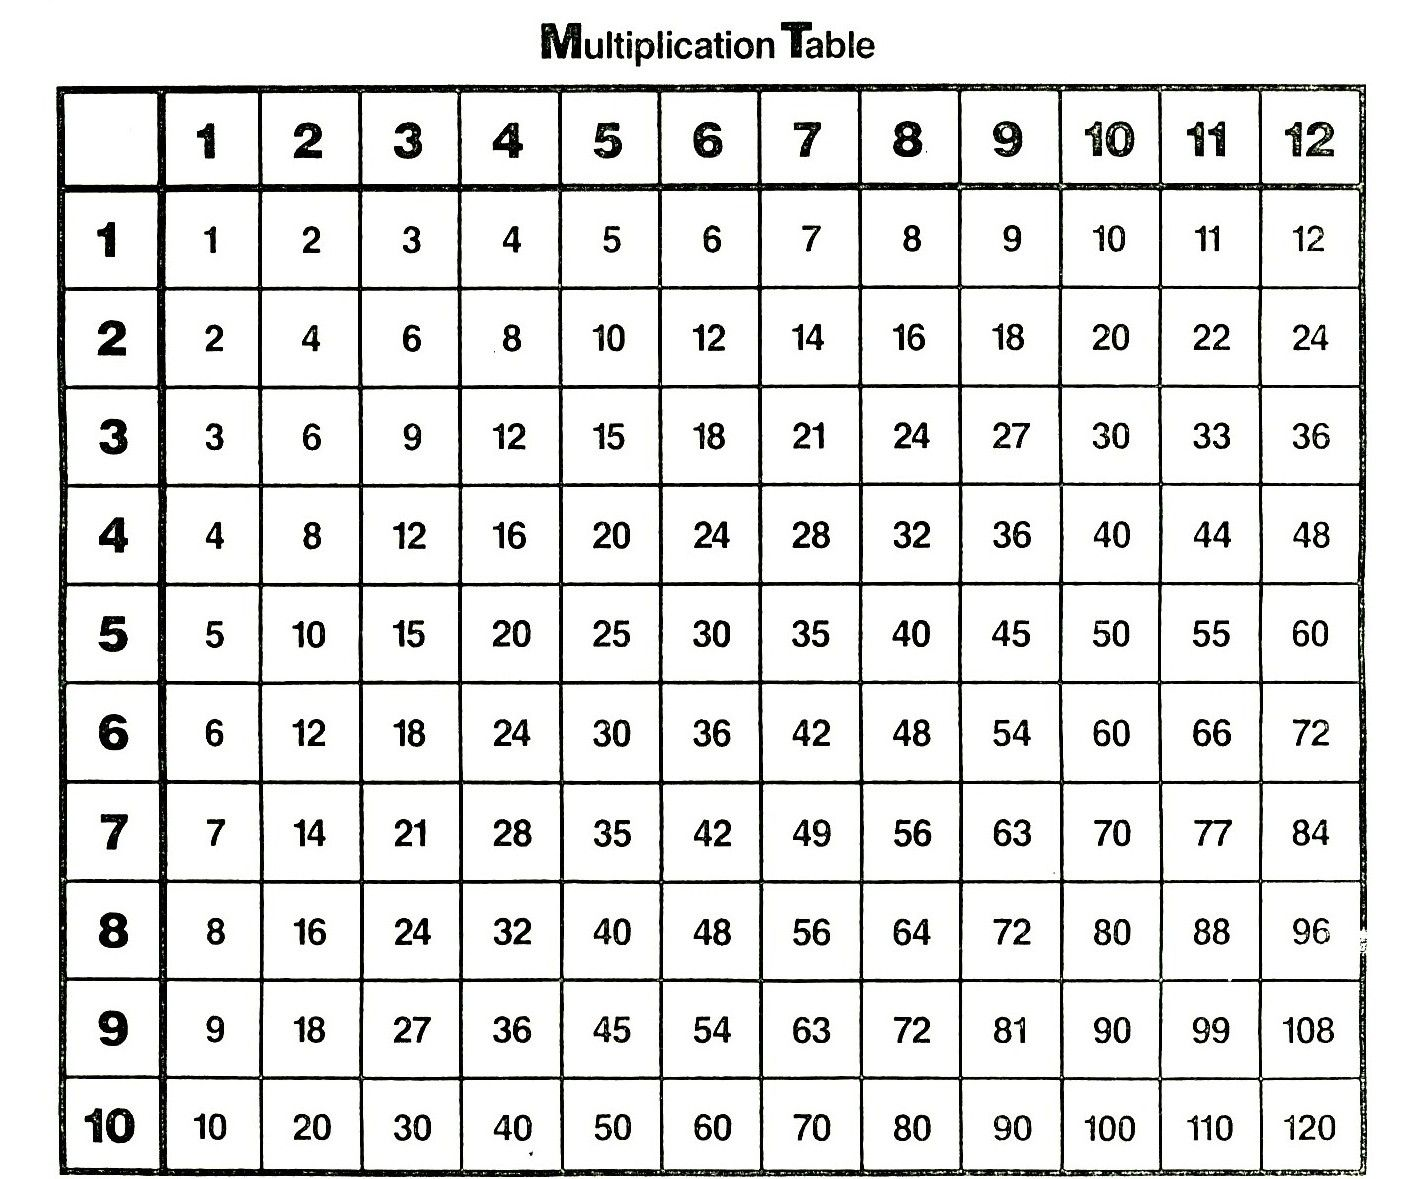 Multiplication Table Pdf Printable In 2020 Multiplication Chart Times Tables Worksheets Kids Math Worksheets